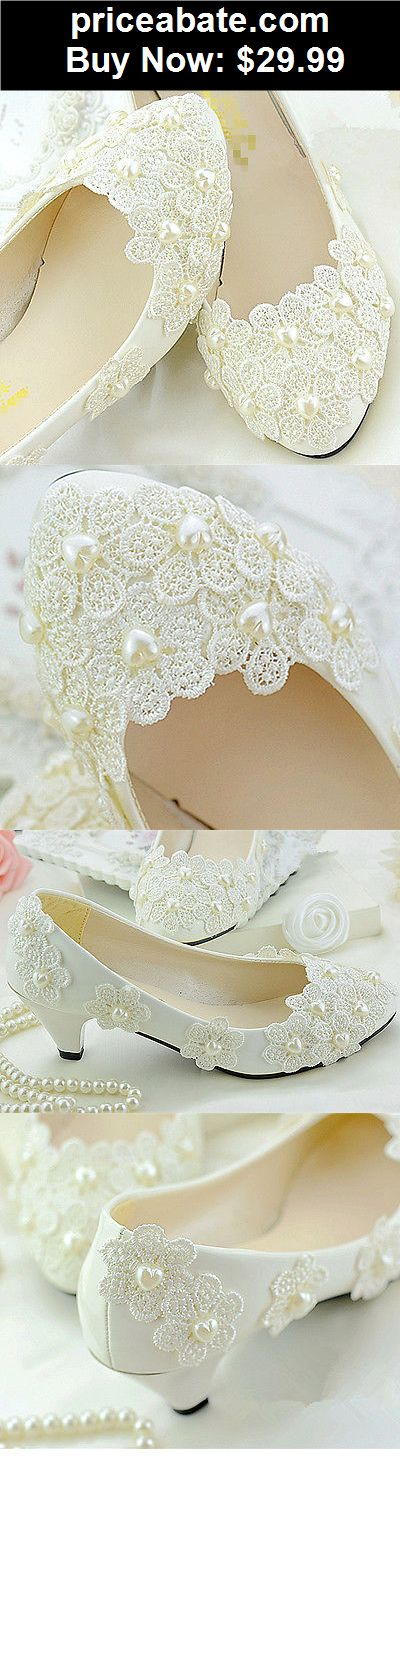 Wedding-Shoes-And-Bridal-Shoes: Lace pearl Wedding shoes Bridal flats low high heels pumps Bridesmaid size 5-12 - BUY IT NOW ONLY $29.99